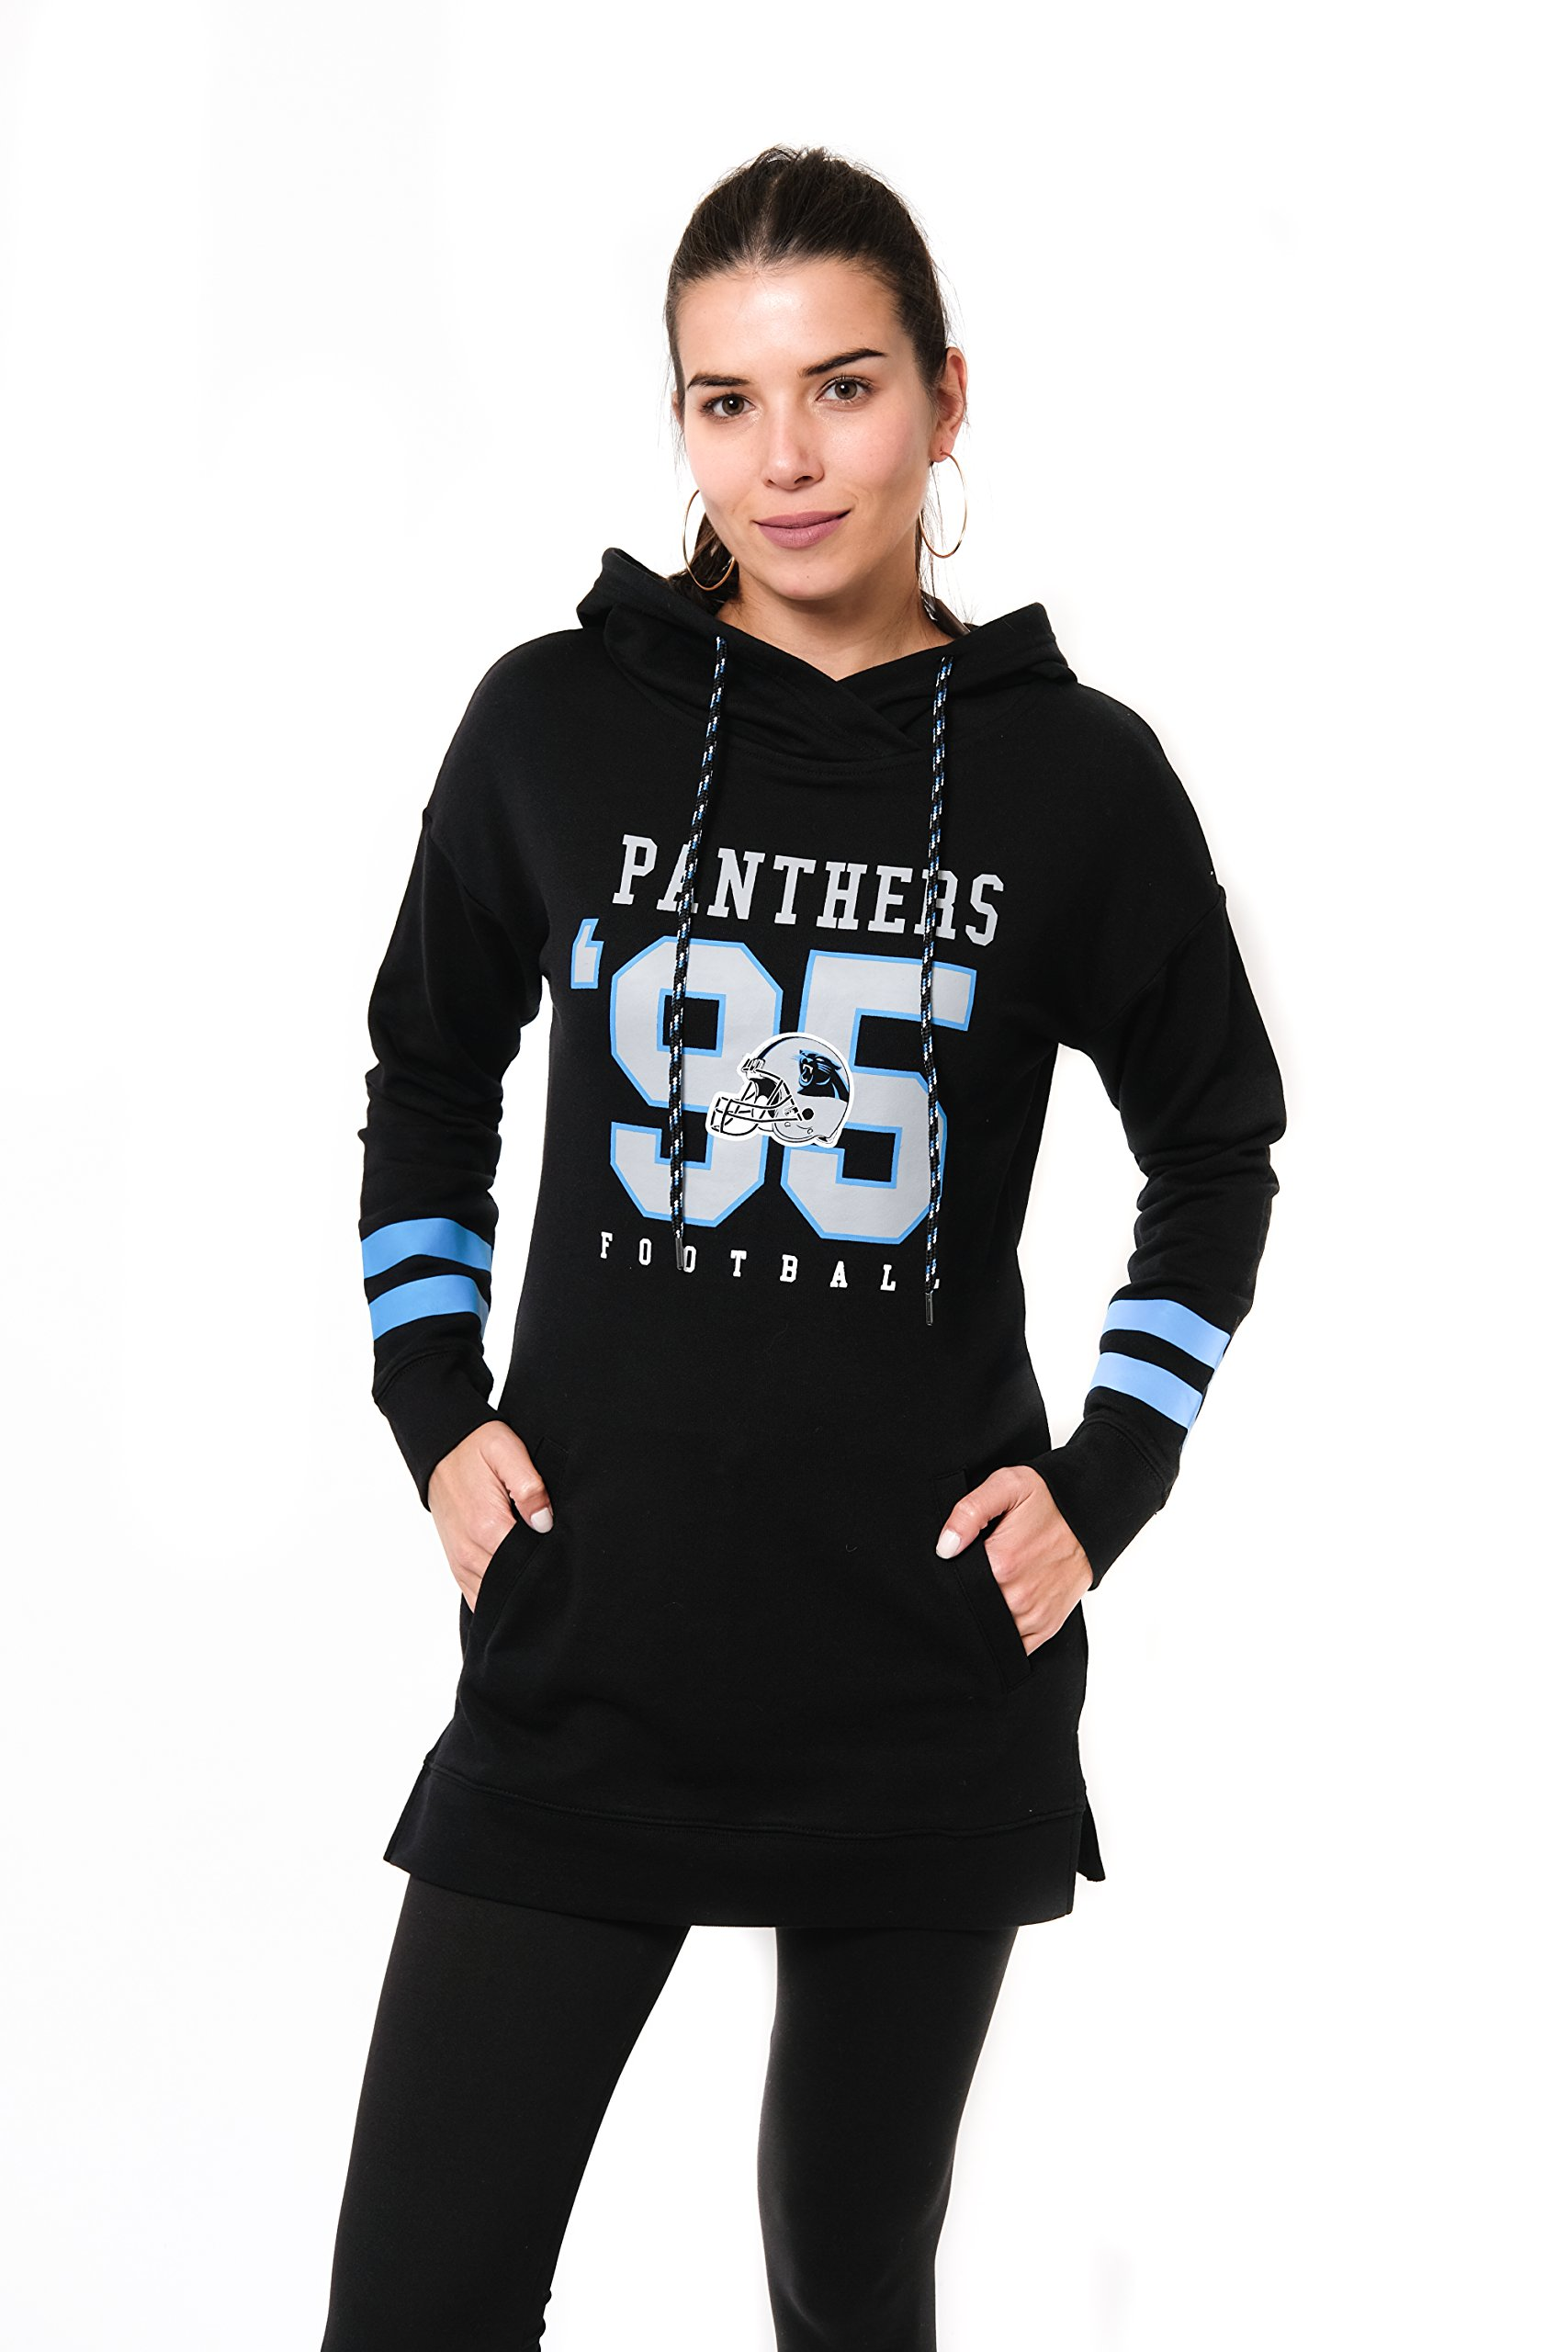 Ultra Game NFL Carolina Panthers Women's Tunic Hoodie Pullover Sweatshirt Terry, Team Color, Black, Small